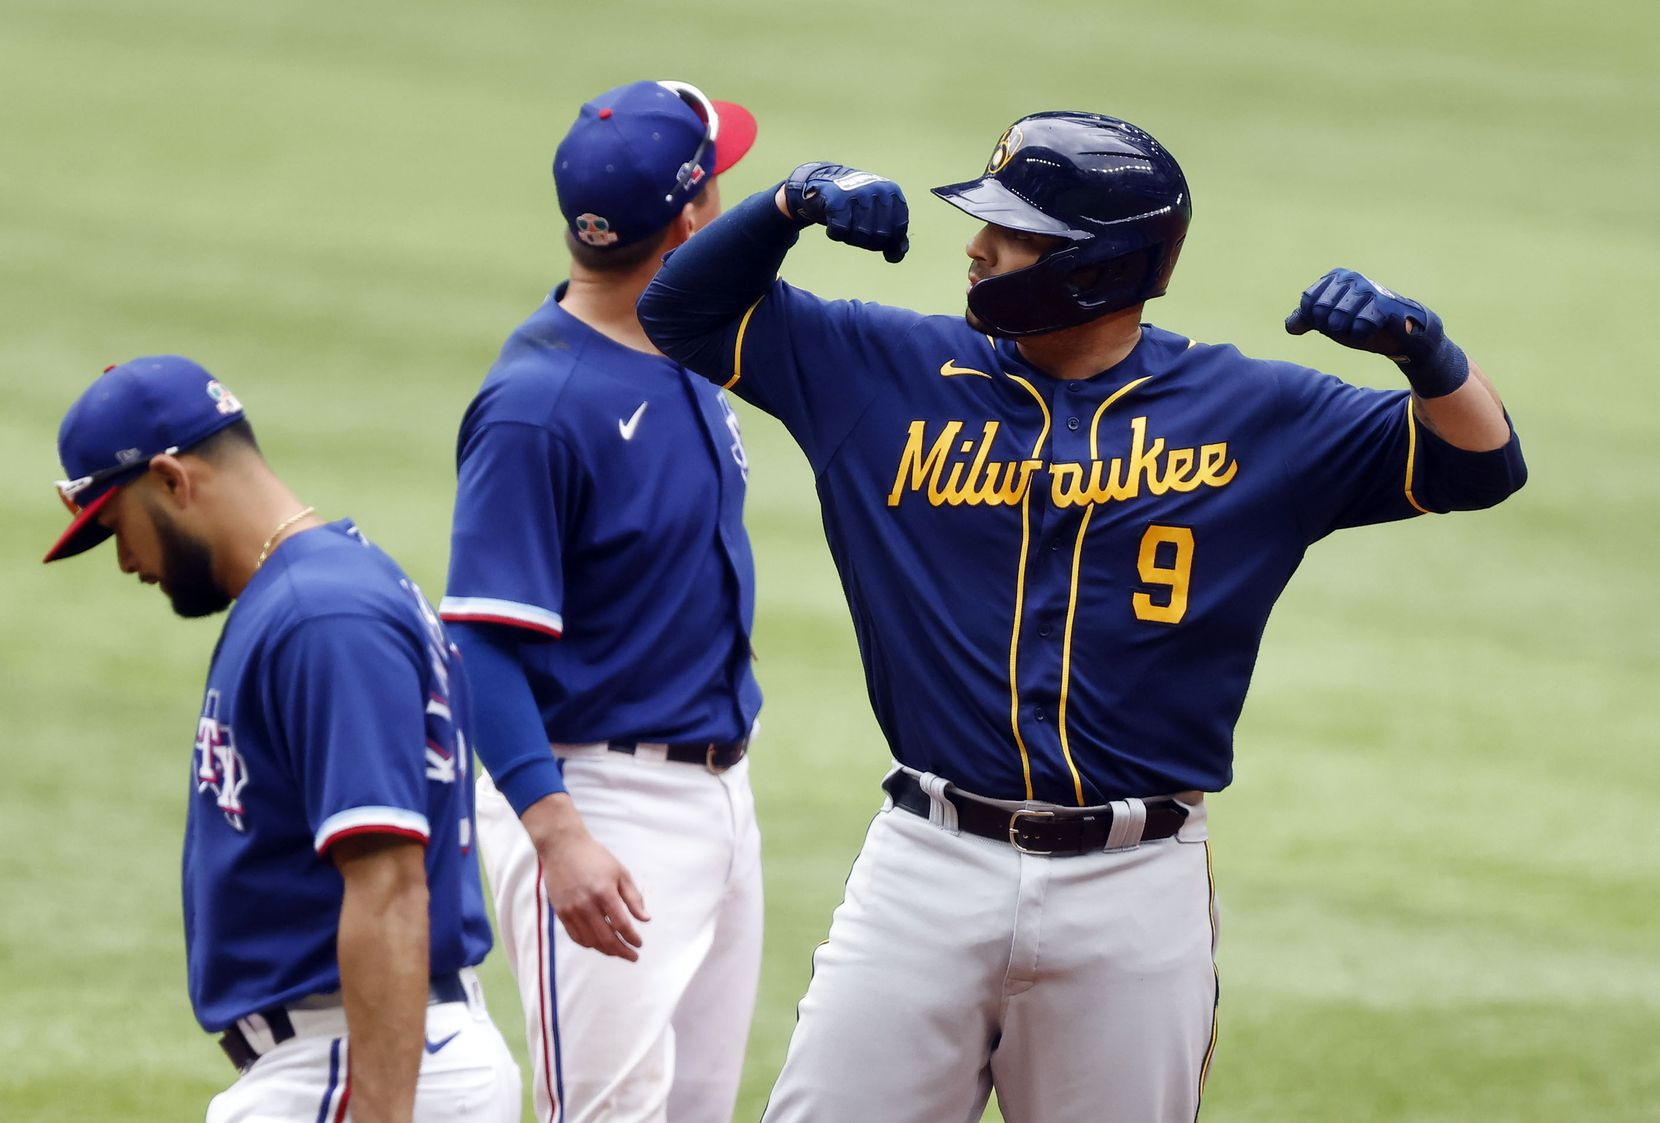 Milwaukee Brewers batter Manny Pina (9) flexes after making it to second on a single to center in the third inning at Globe Life Field in Arlington, Texas. The teams were playing in an exhibition game, Tuesday, March 30, 2021. Milwaukee Brewers Daniel Vogelbach scored on the hit.  (Tom Fox/The Dallas Morning News)